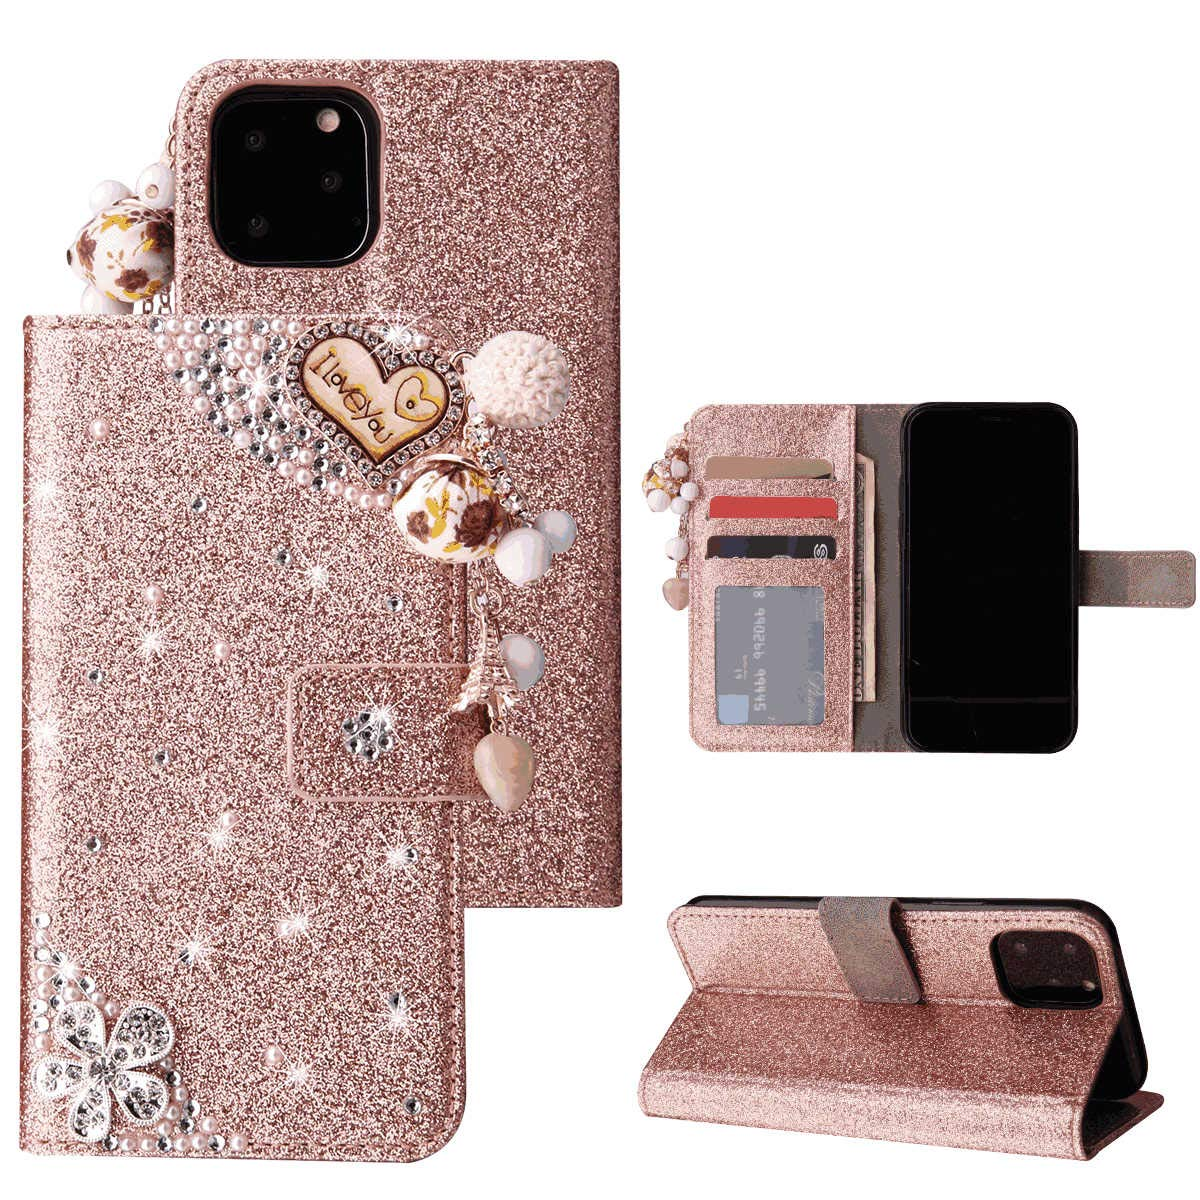 iPhone 11 Pro Flip Case Cover for Leather Card Holders Cell Phone Cover Luxury Business Kickstand Flip Cover